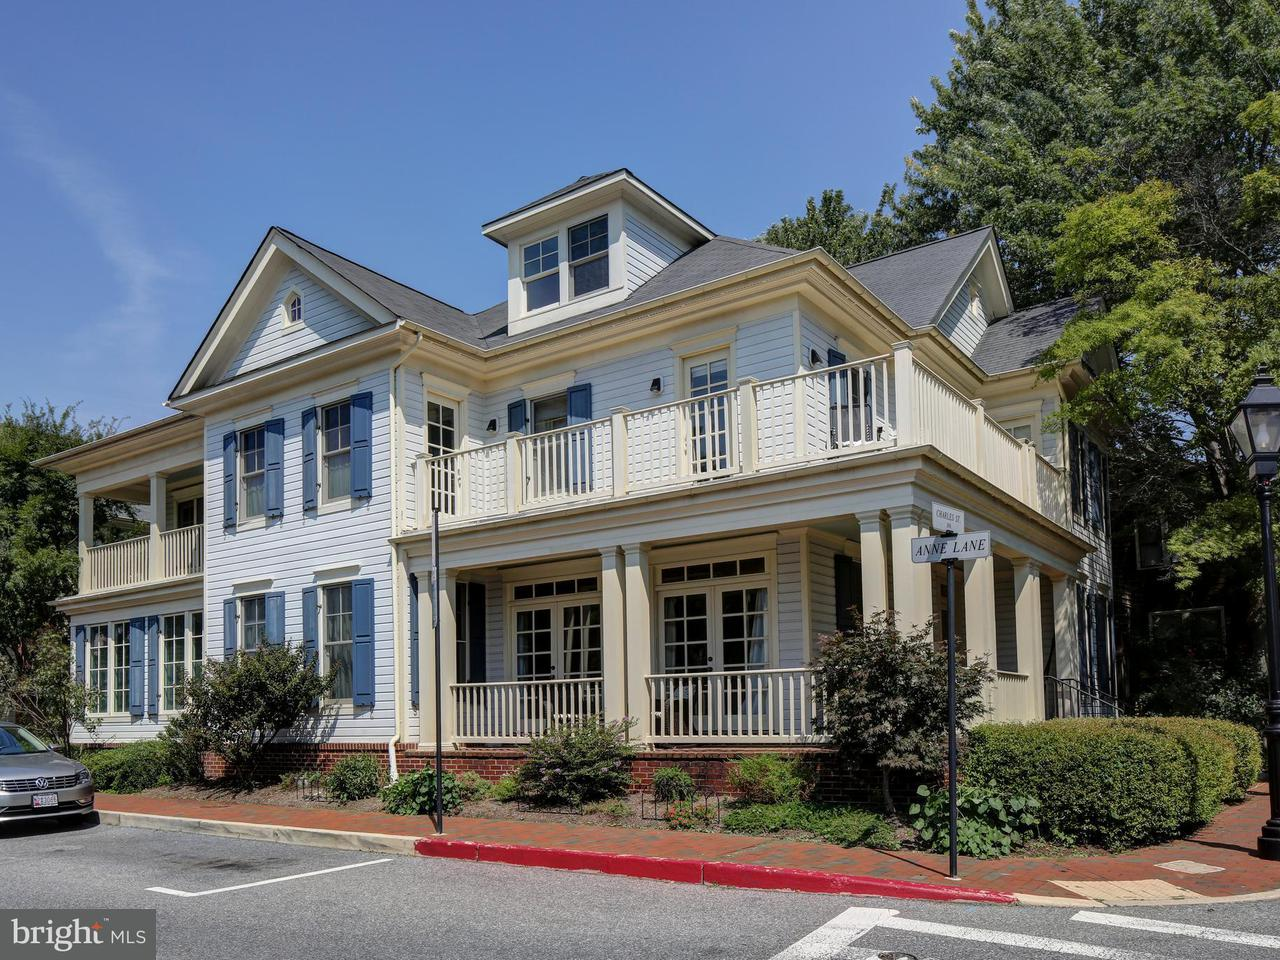 Single Family Home for Sale at 75 Charles Street 75 Charles Street Annapolis, Maryland 21401 United States